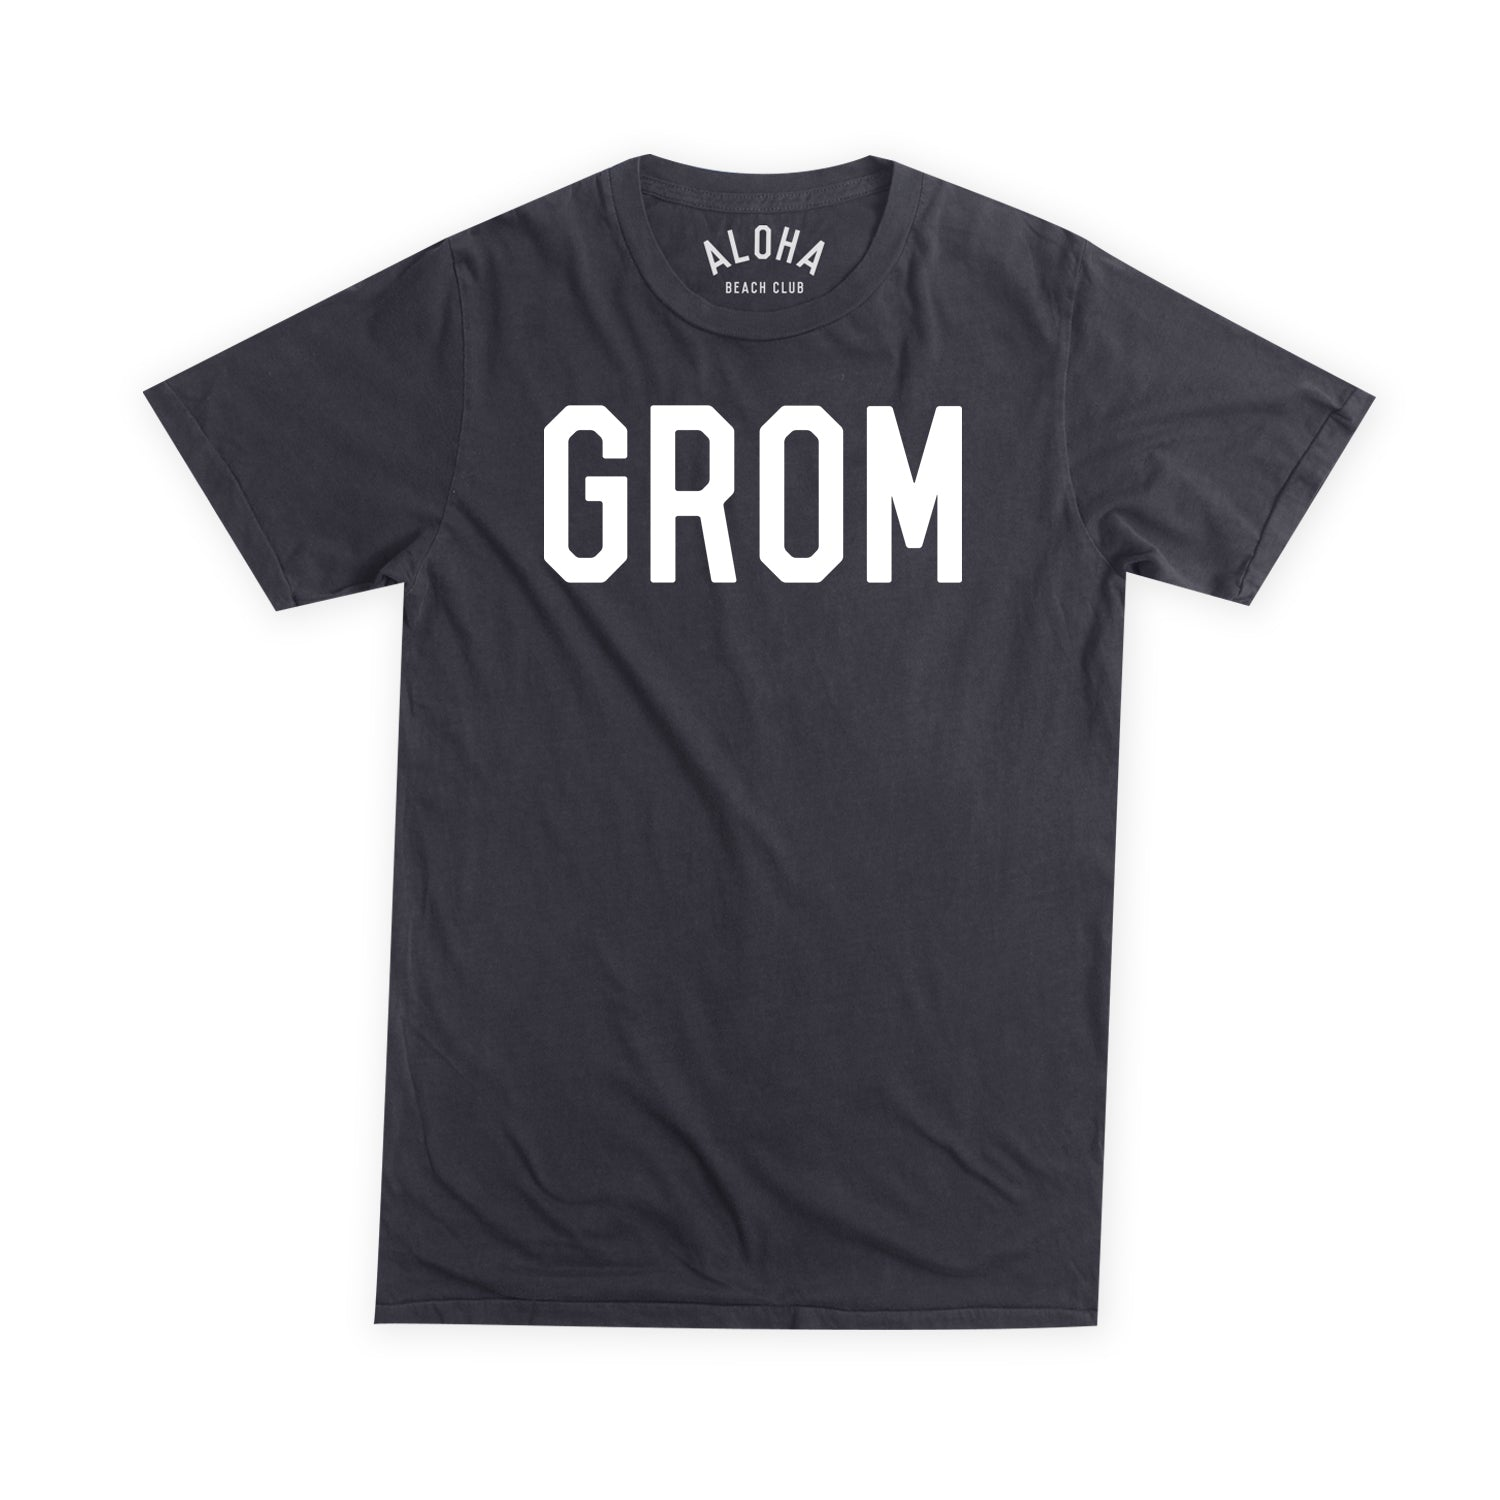 Grom Adult Tee From Aloha Beach Club